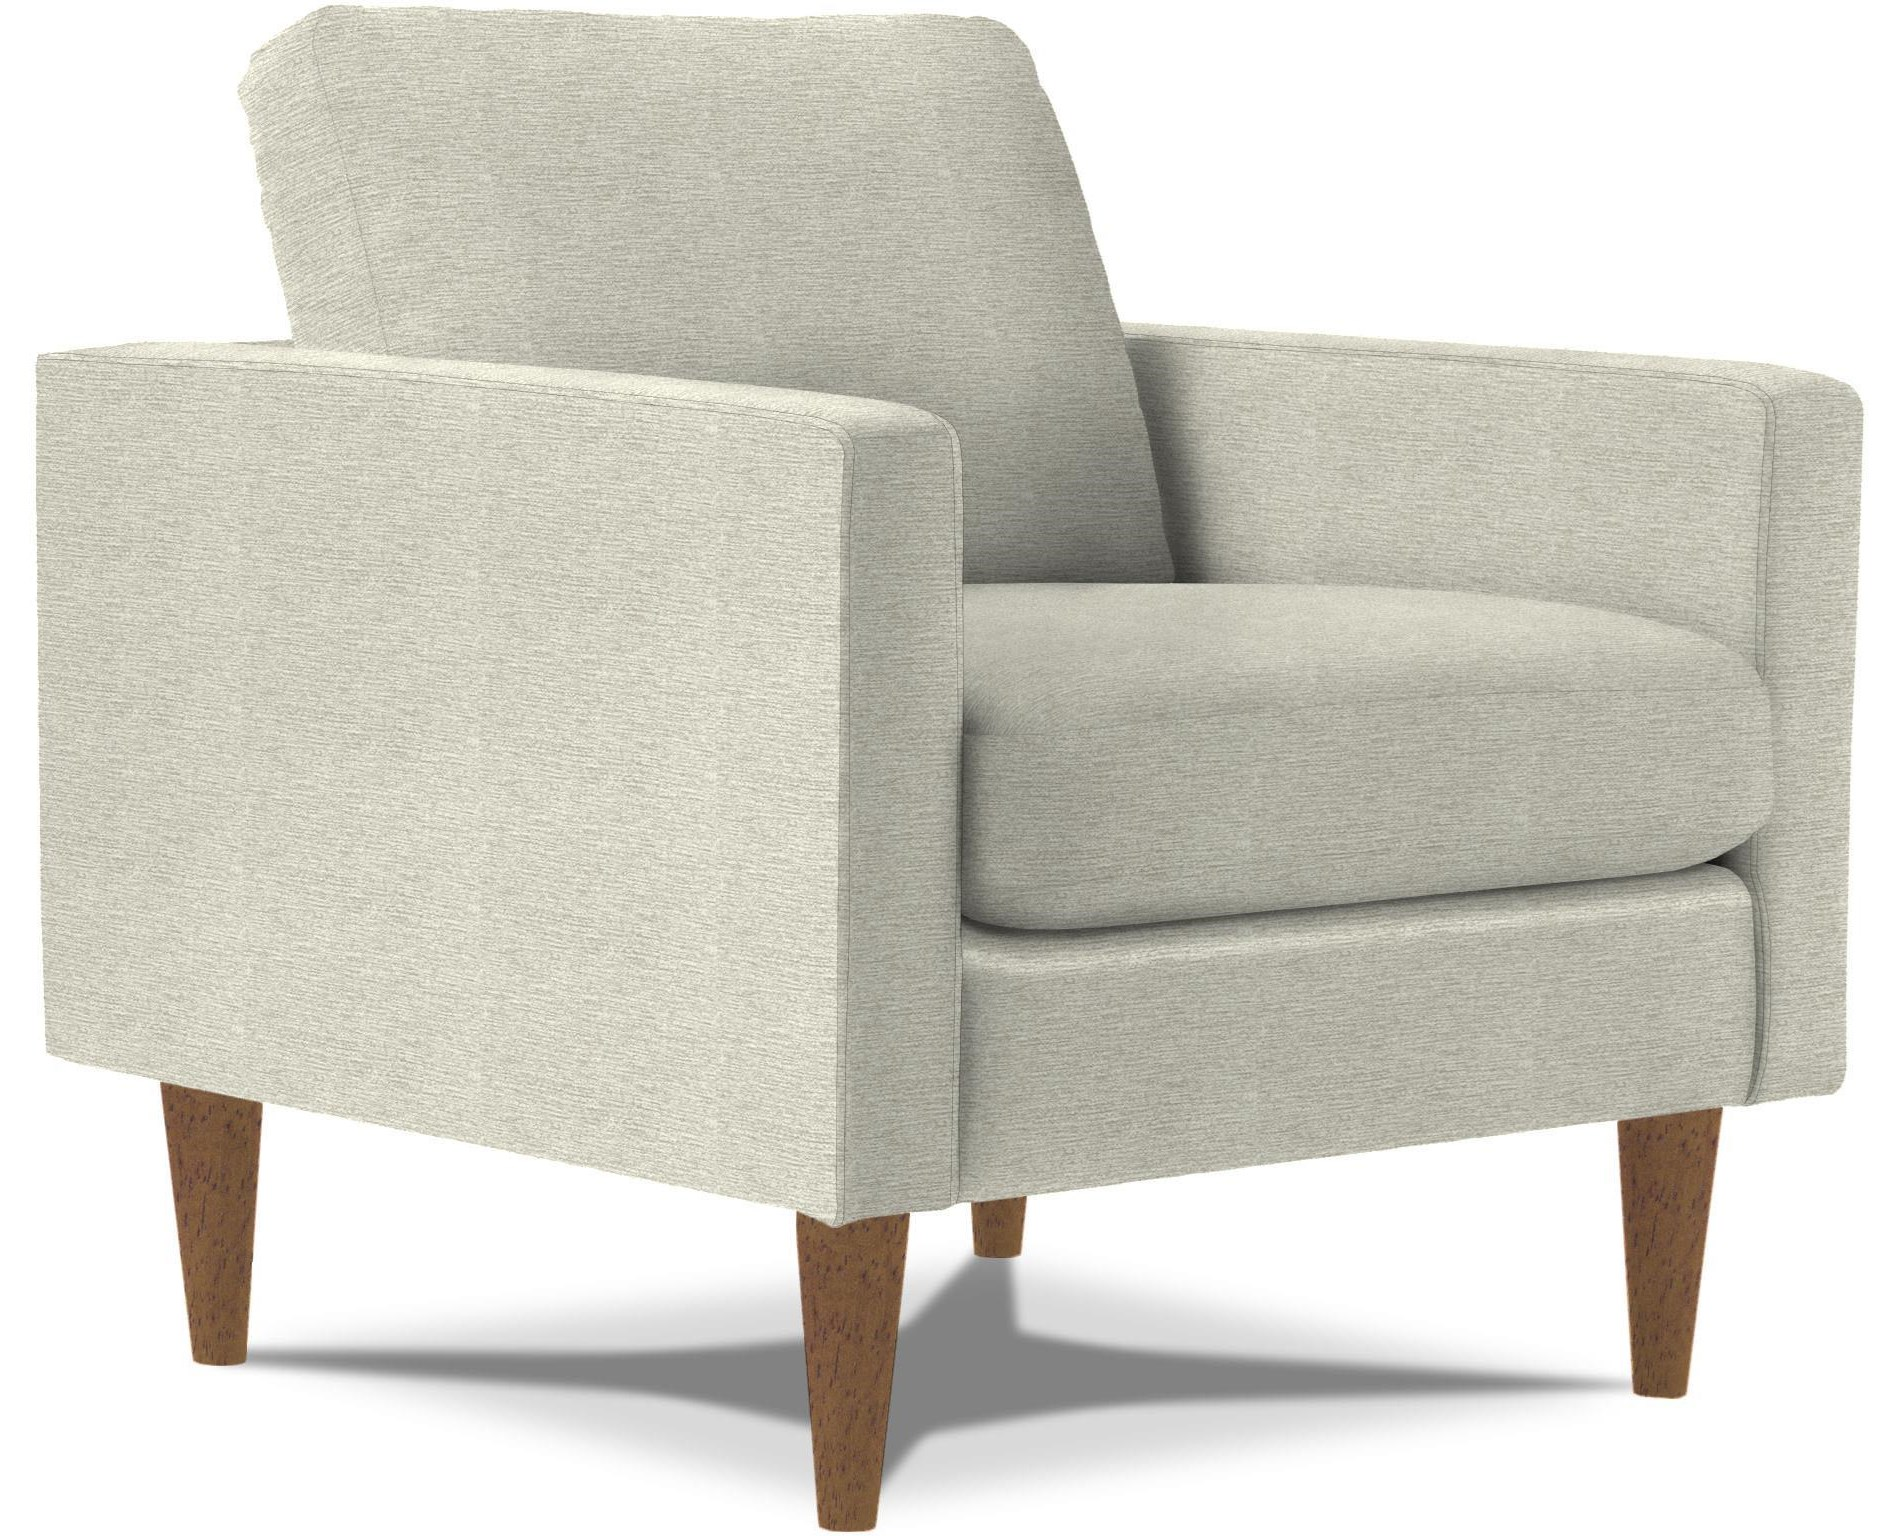 Chelsea Chair by Best Home Furnishings at Crowley Furniture & Mattress